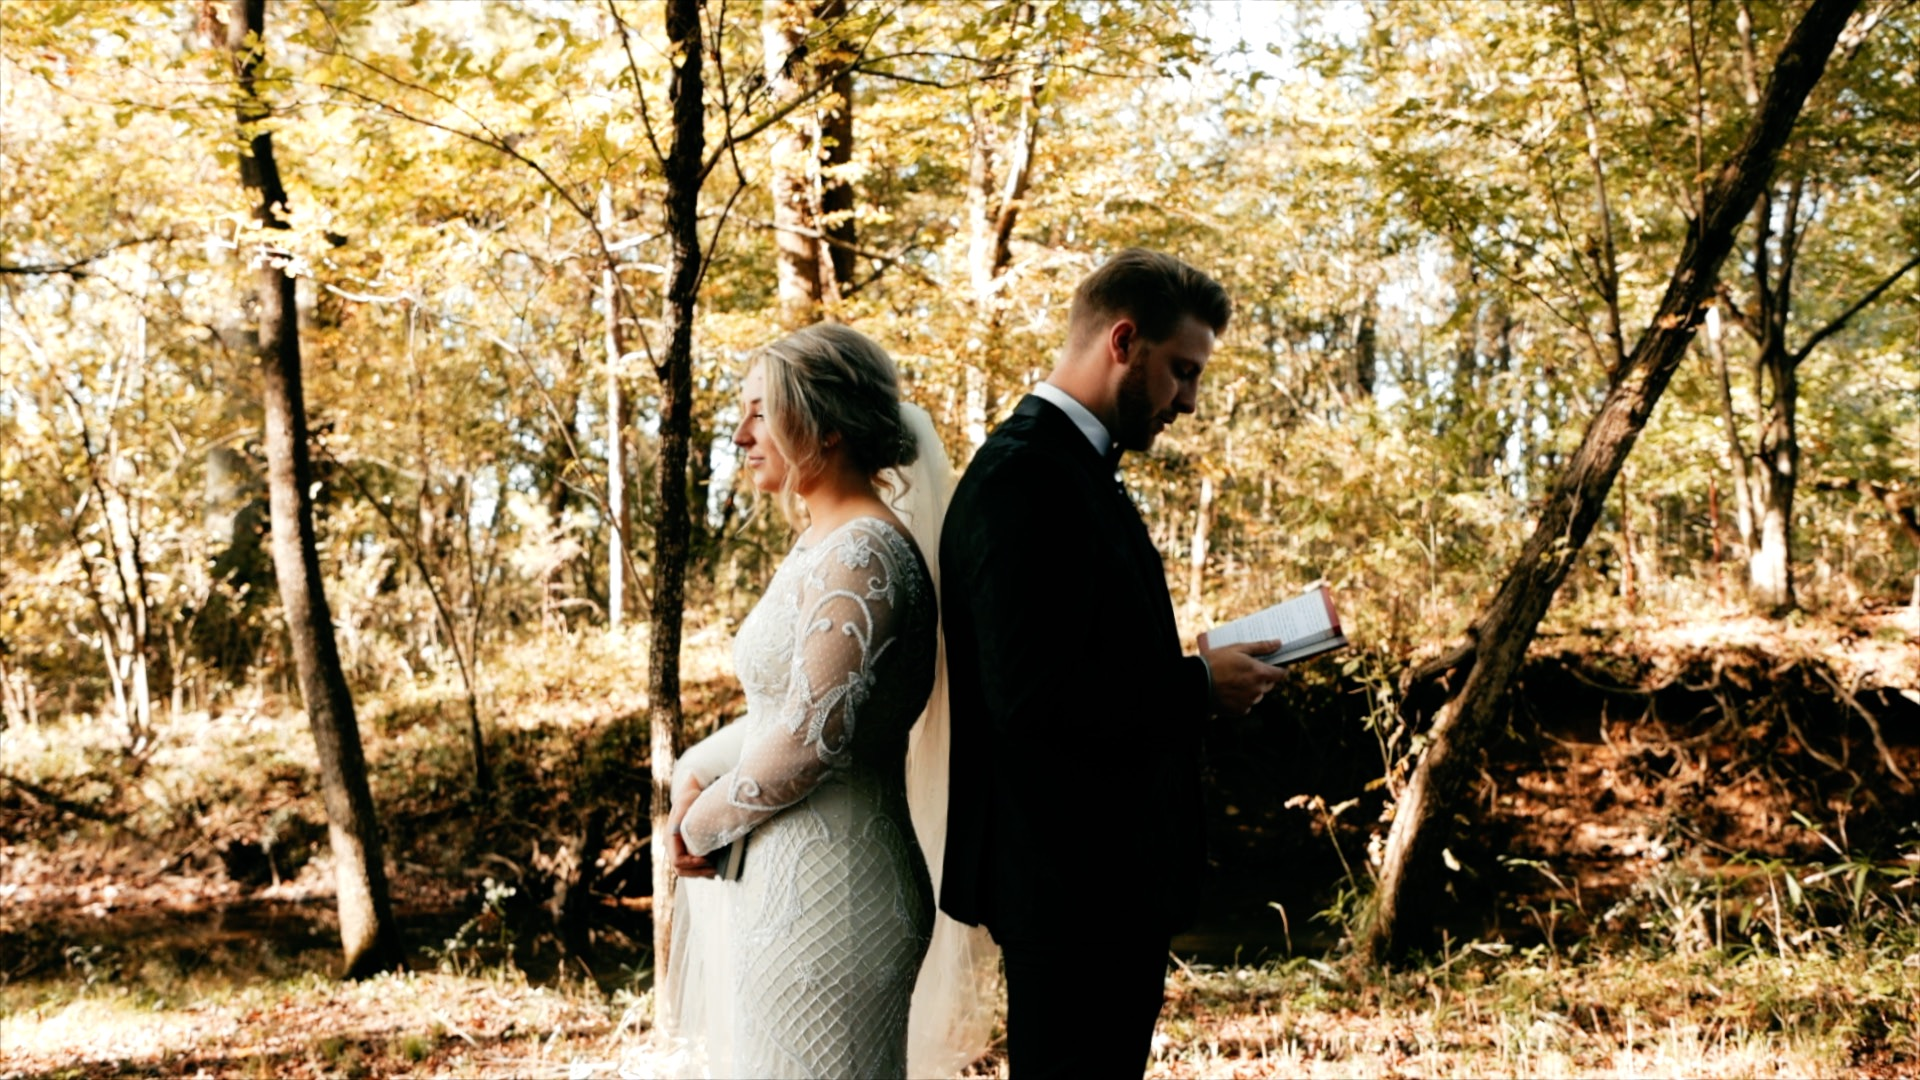 Evan + Emily | Lewisburg, Tennessee | a family home